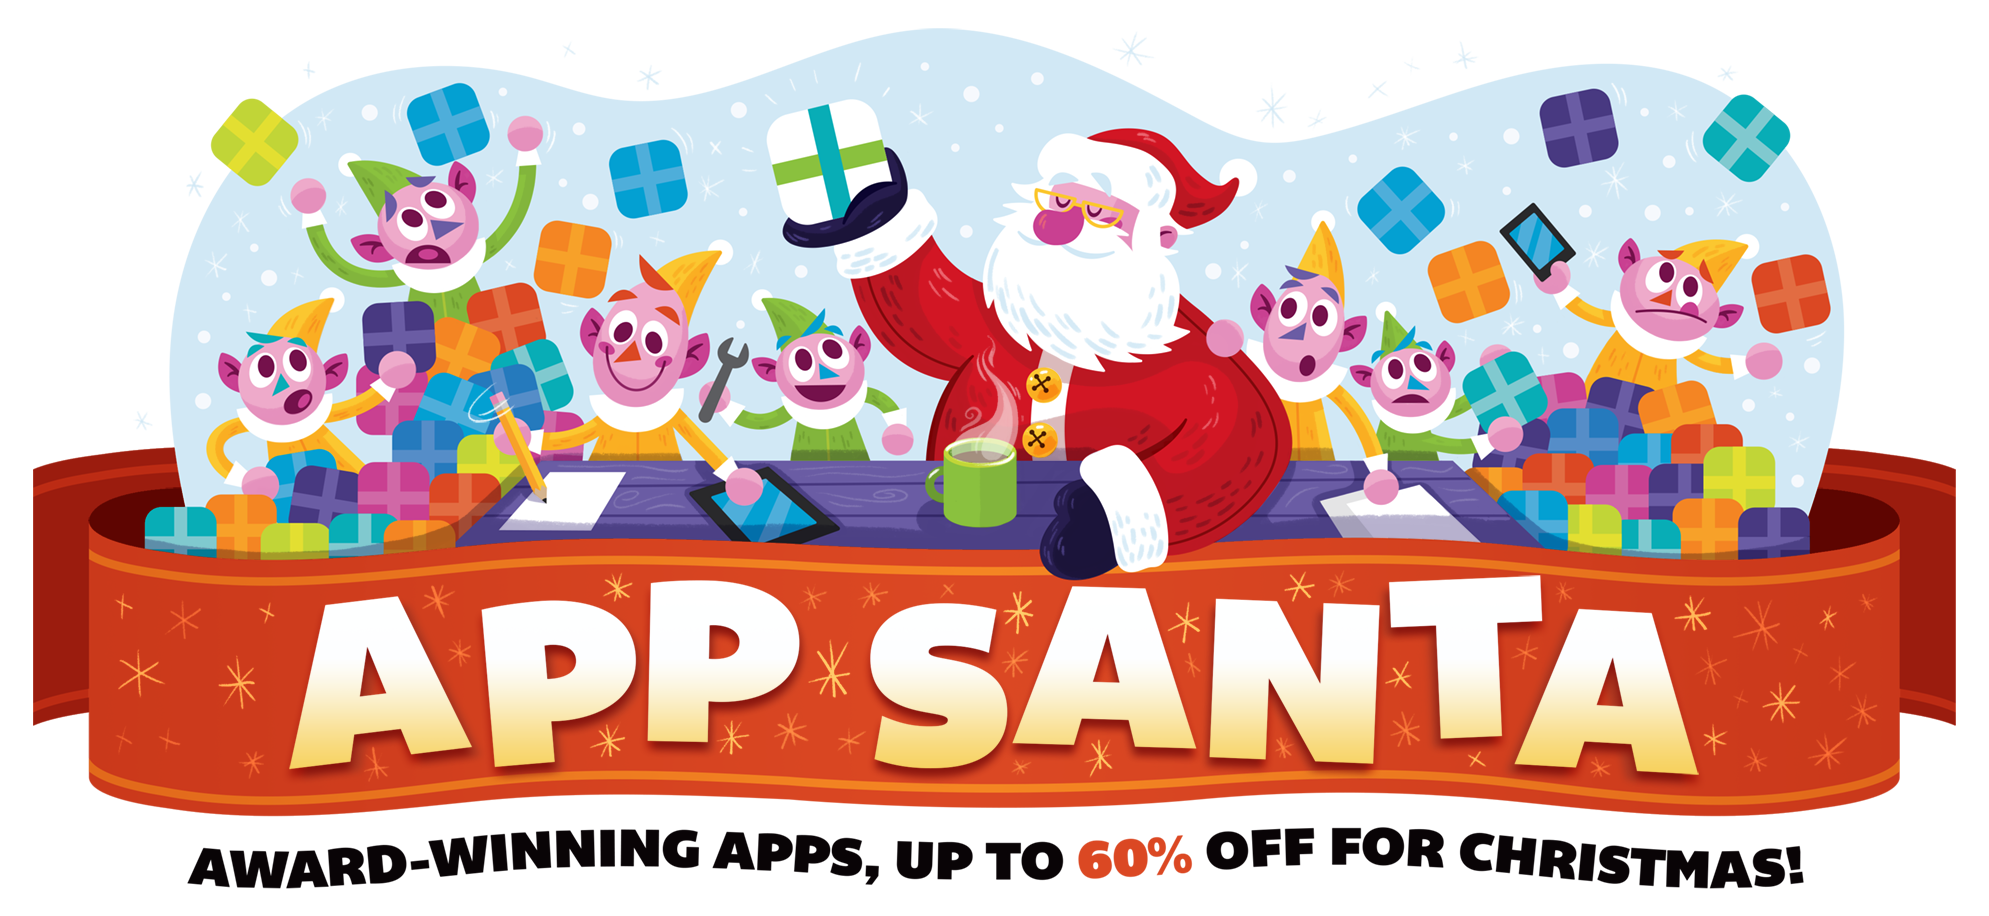 Be jolly with these amazing discounts from App Santa